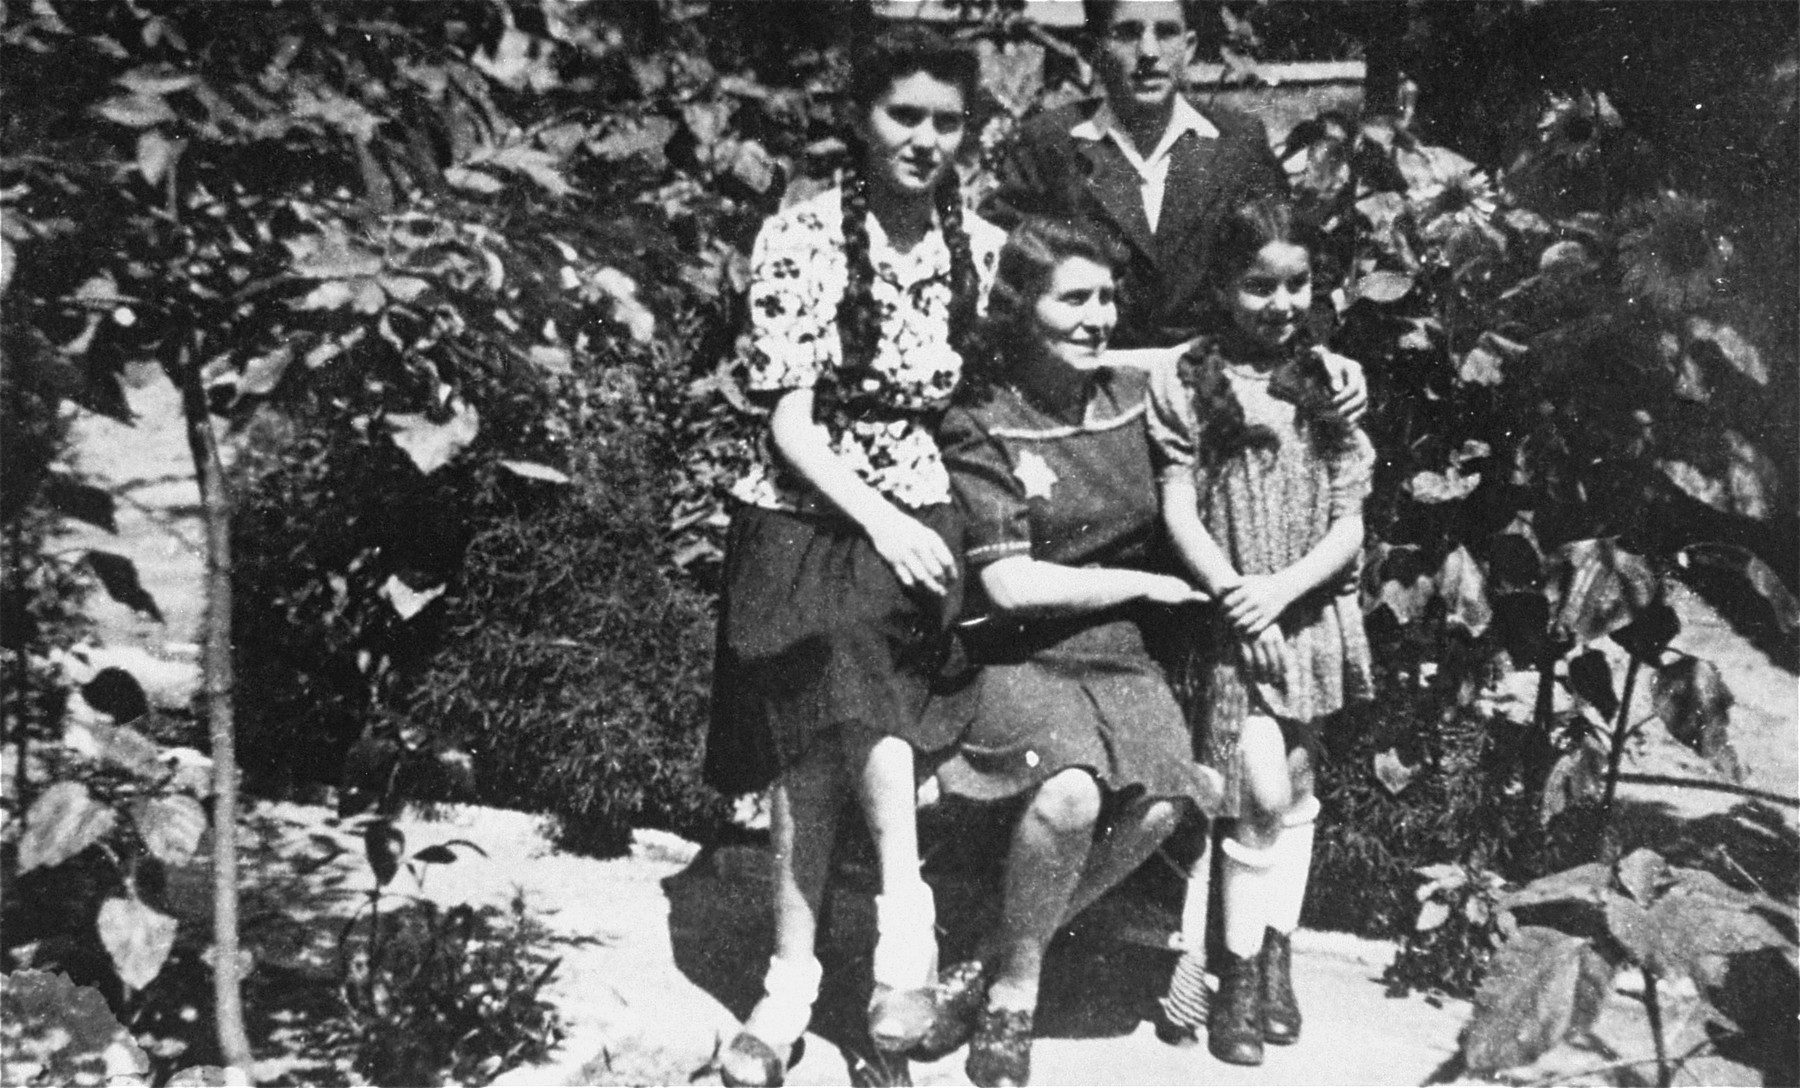 Portrait of the Aigner family in Nove Zamky.  Pictured are Laszlo (Leslie), his sisters Elisabet and Marika, and their mother Anna.